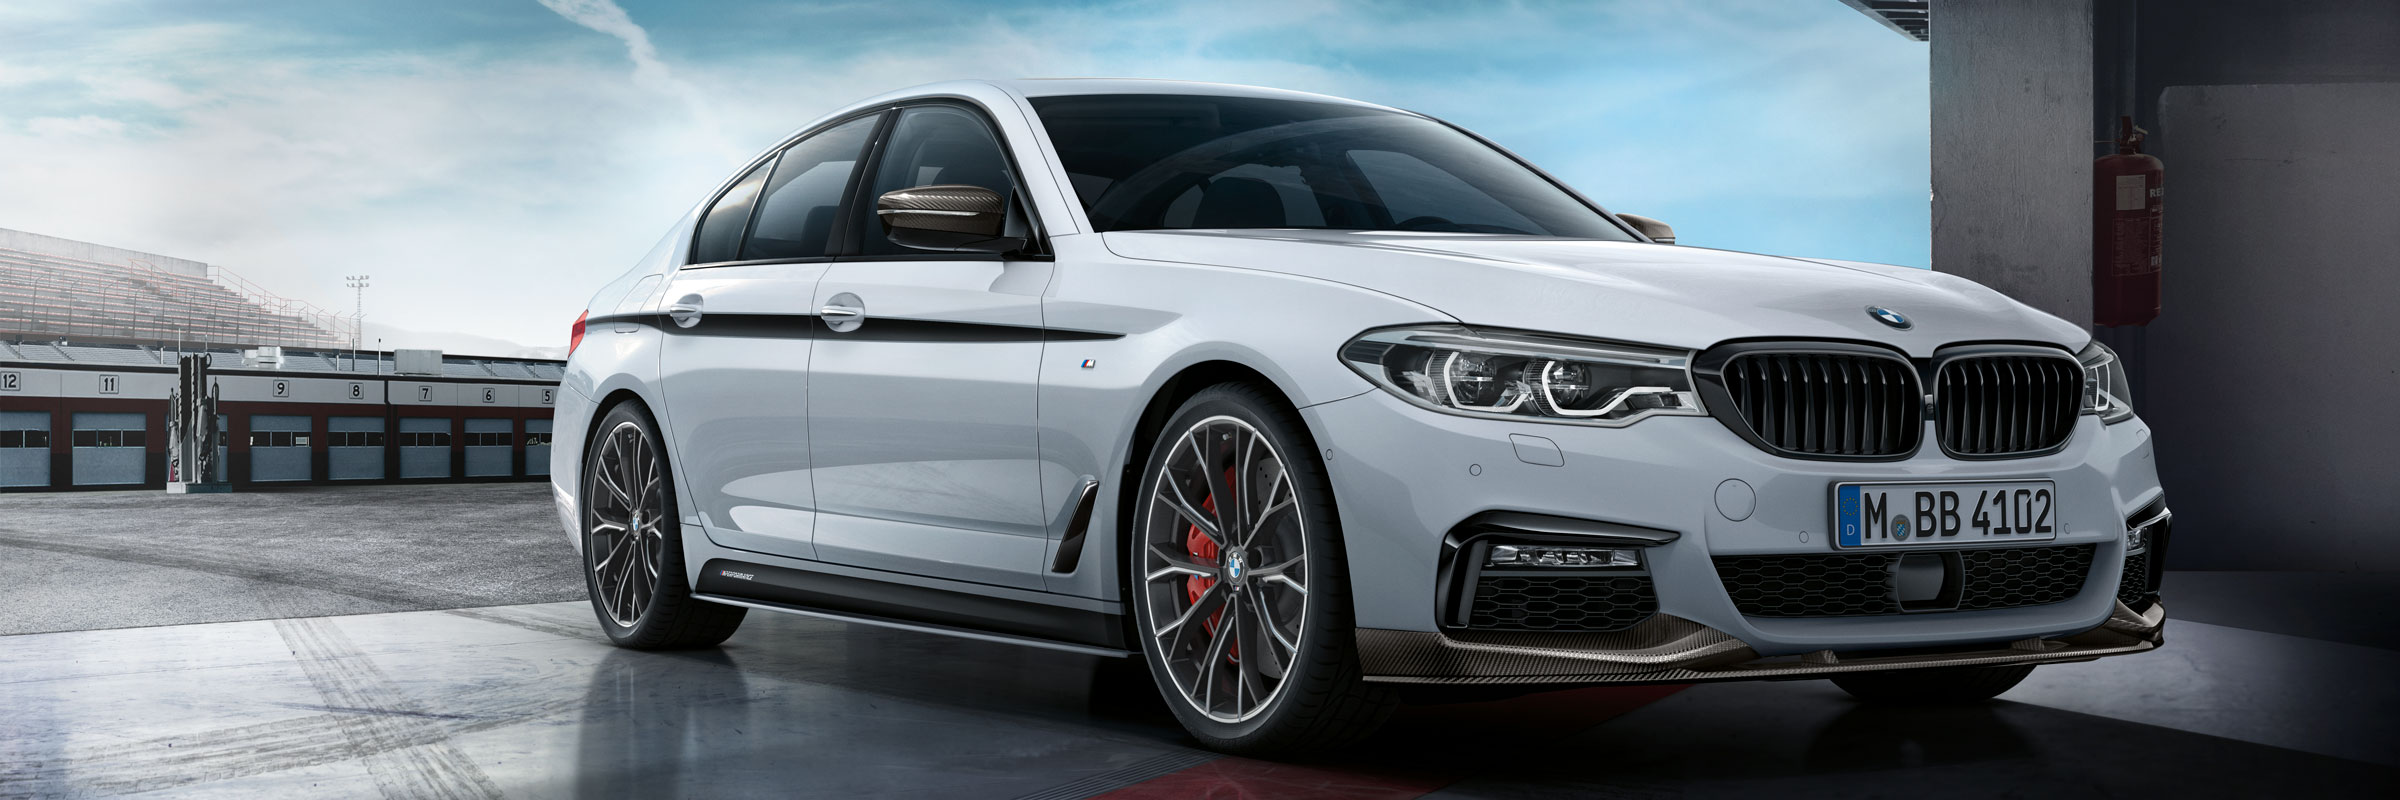 Charming Accessories Configurator | BMW Accessories | BMW UK